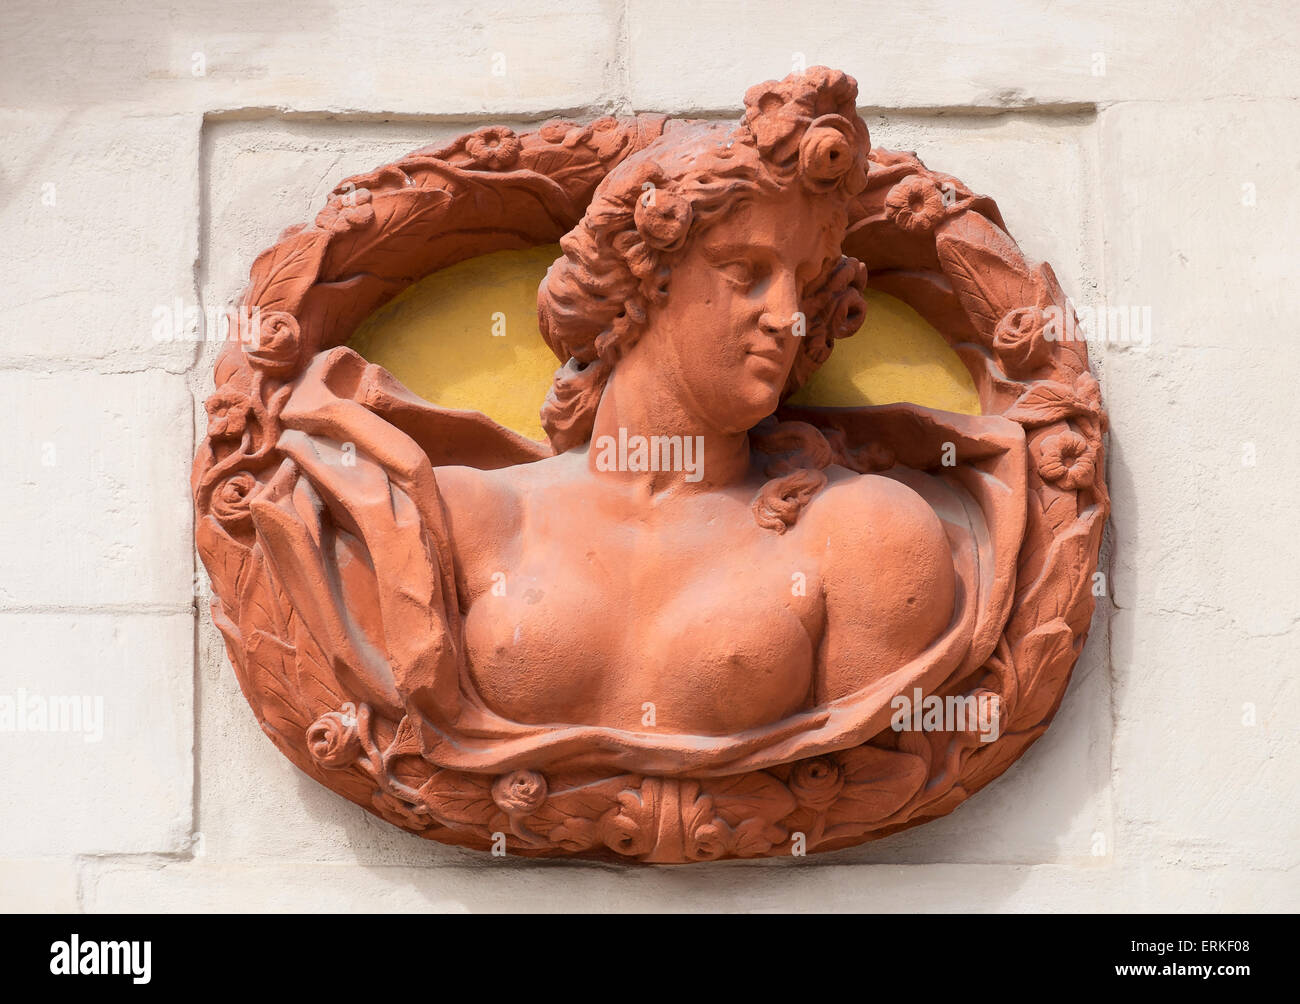 Relief medallion on the external facade of the old palace, Bayreuth, Upper Franconia, Franconia, Bavaria, Germany - Stock Image